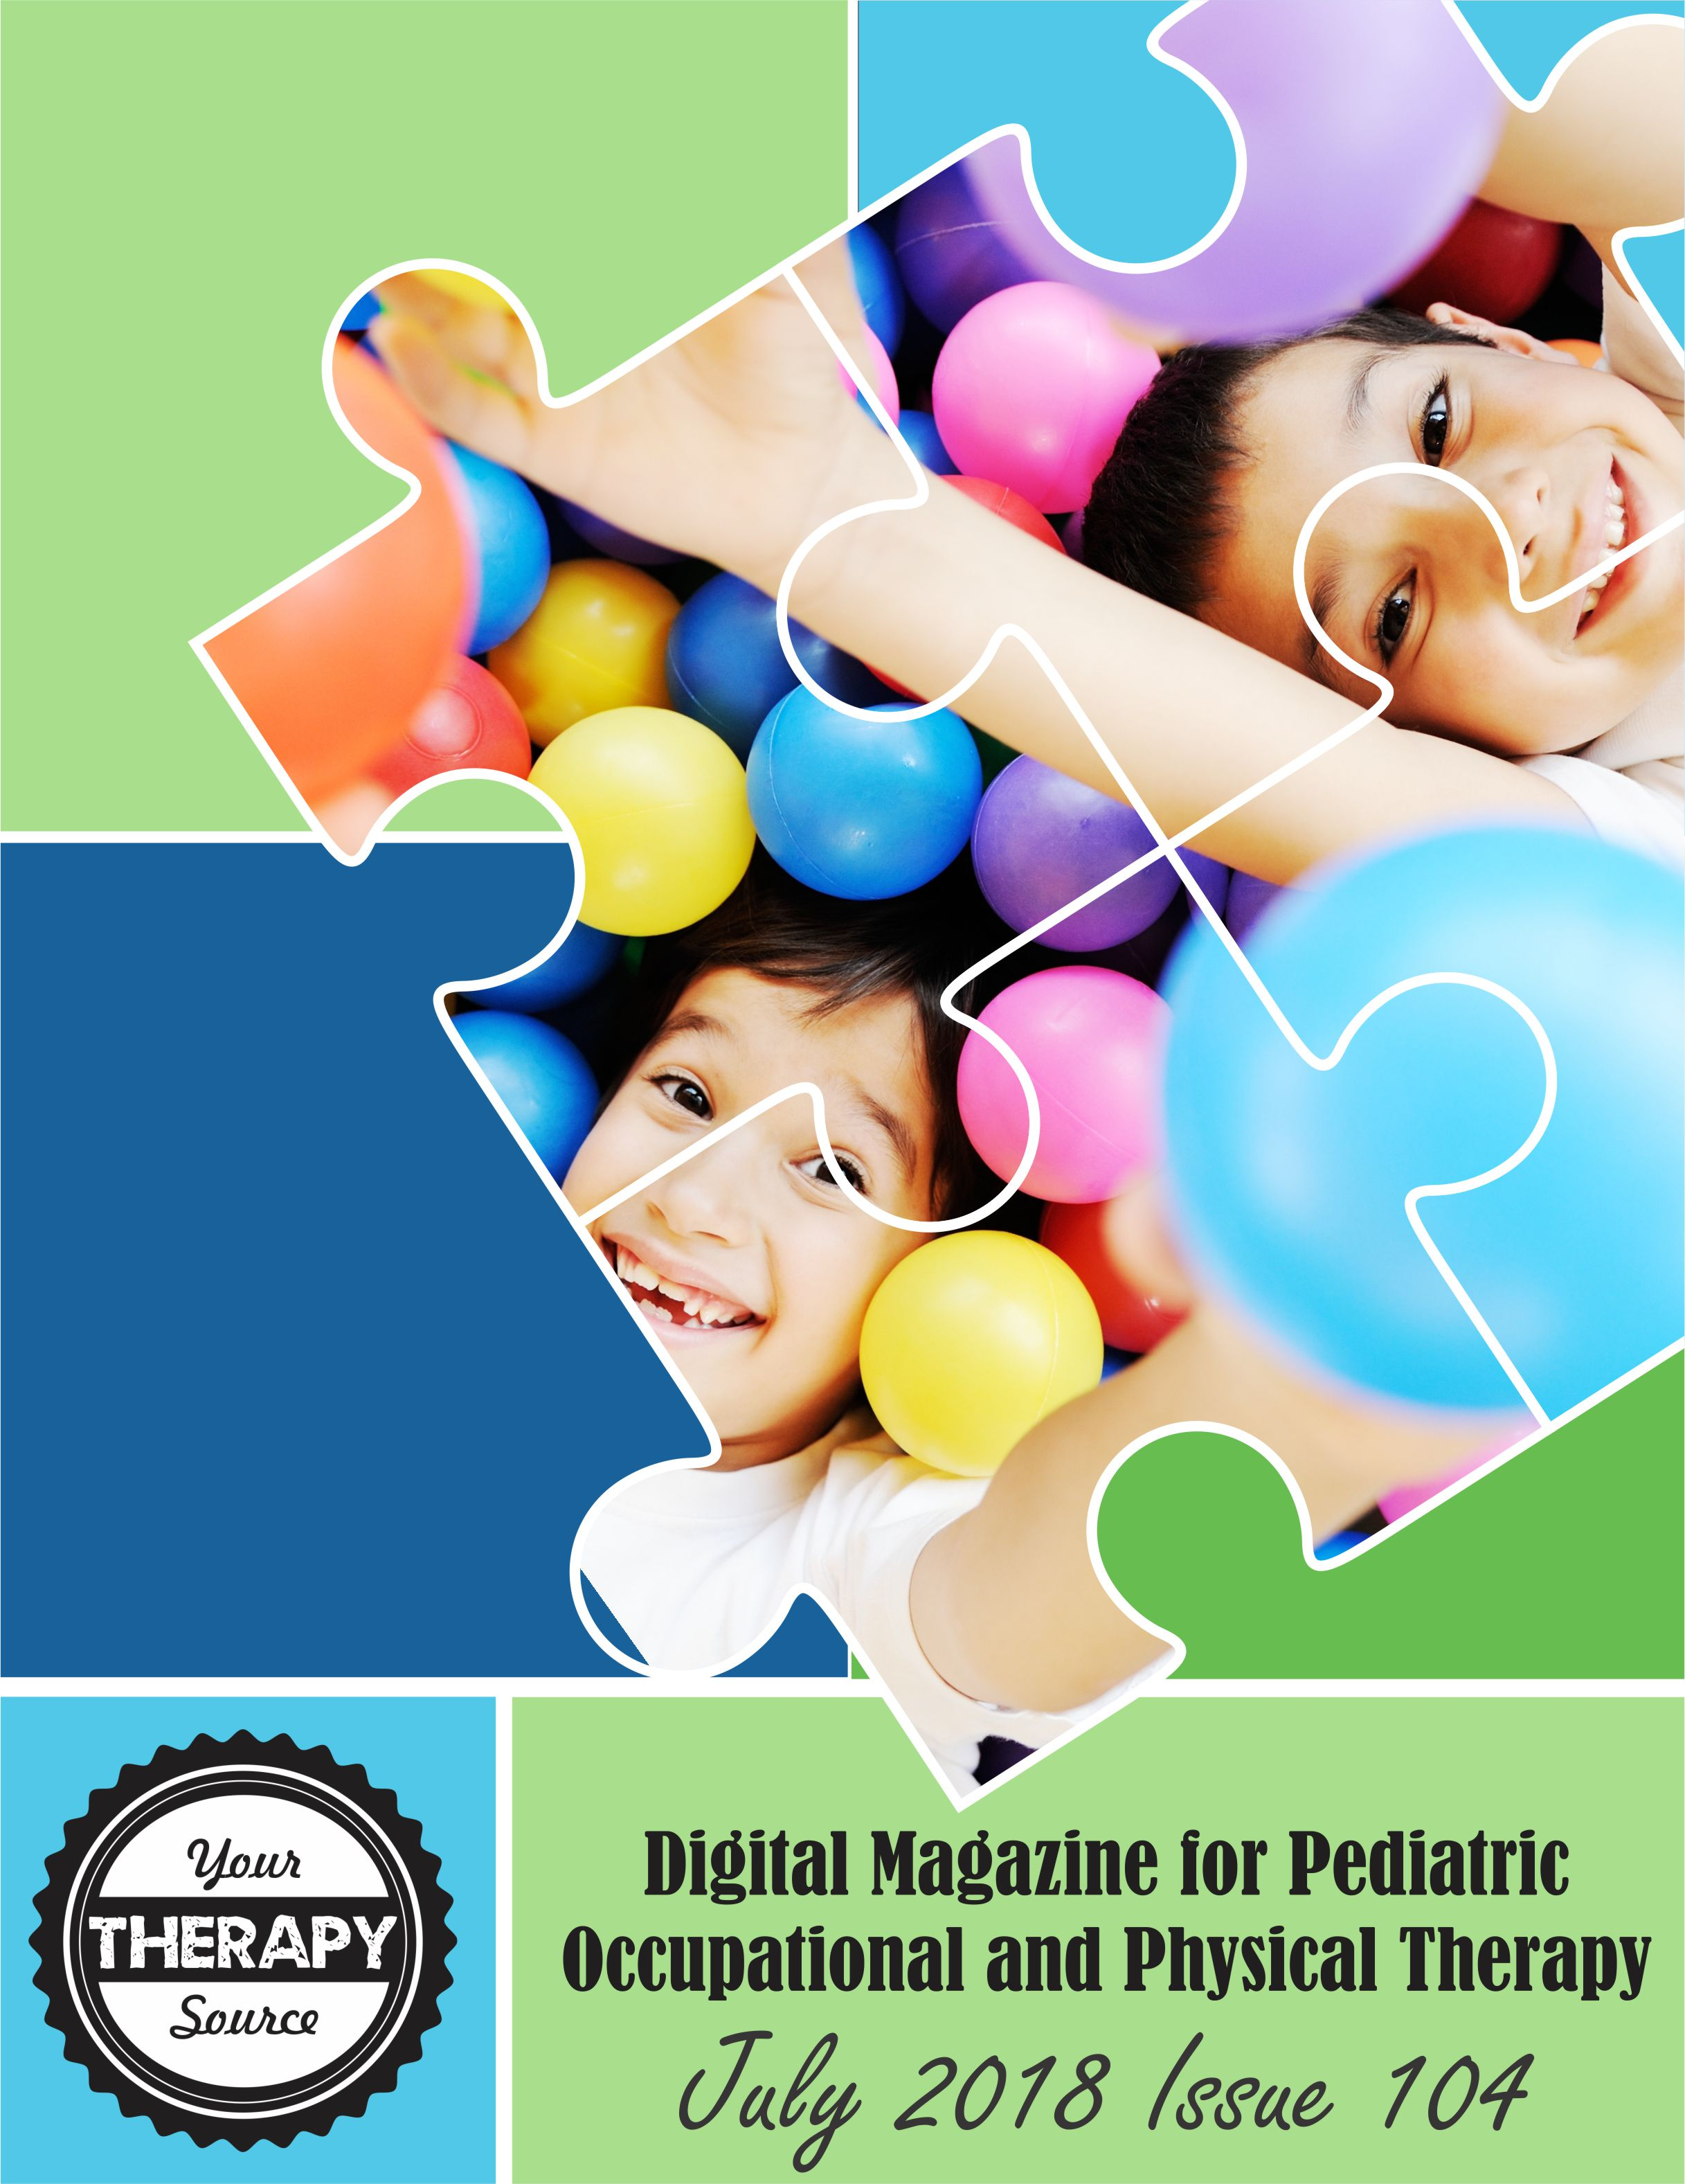 July 2018 Digital Magazine for Pediatric OTs and PTs